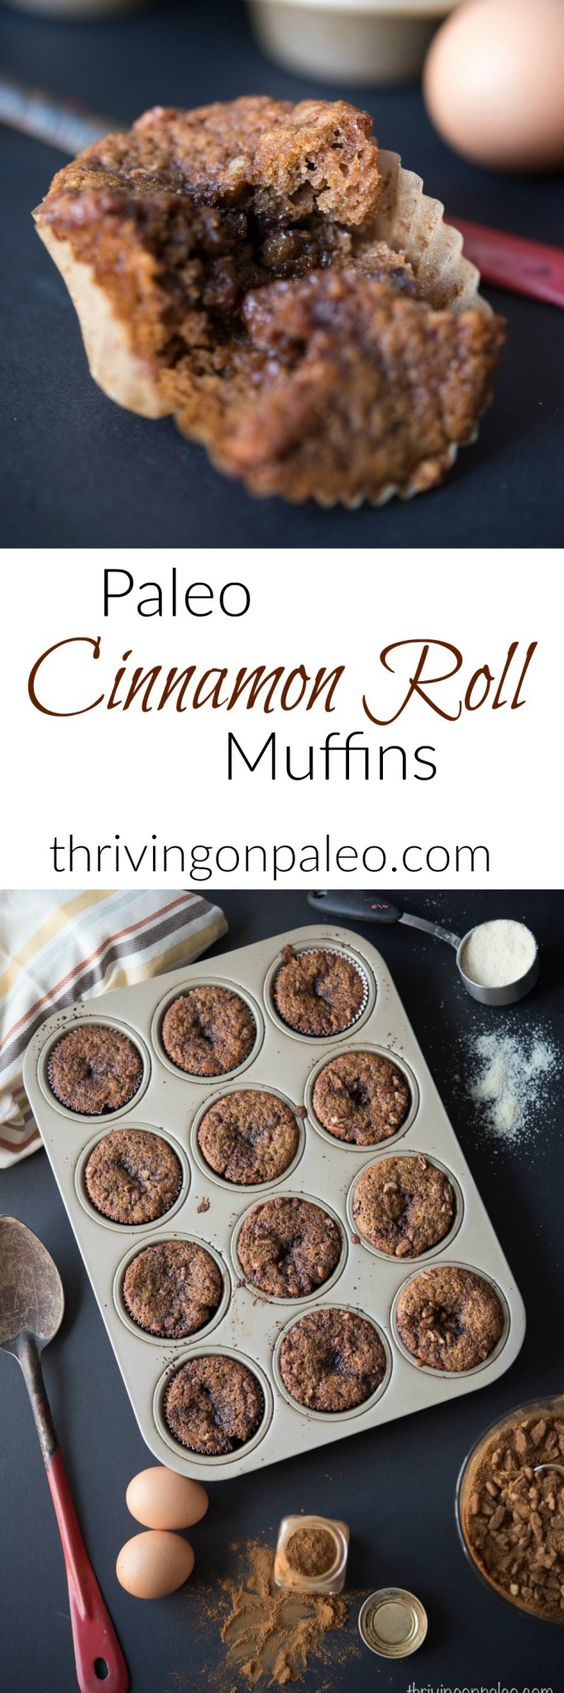 roll cookies cinnamon roll pizza cinnamon roll popovers cinnamon roll ...